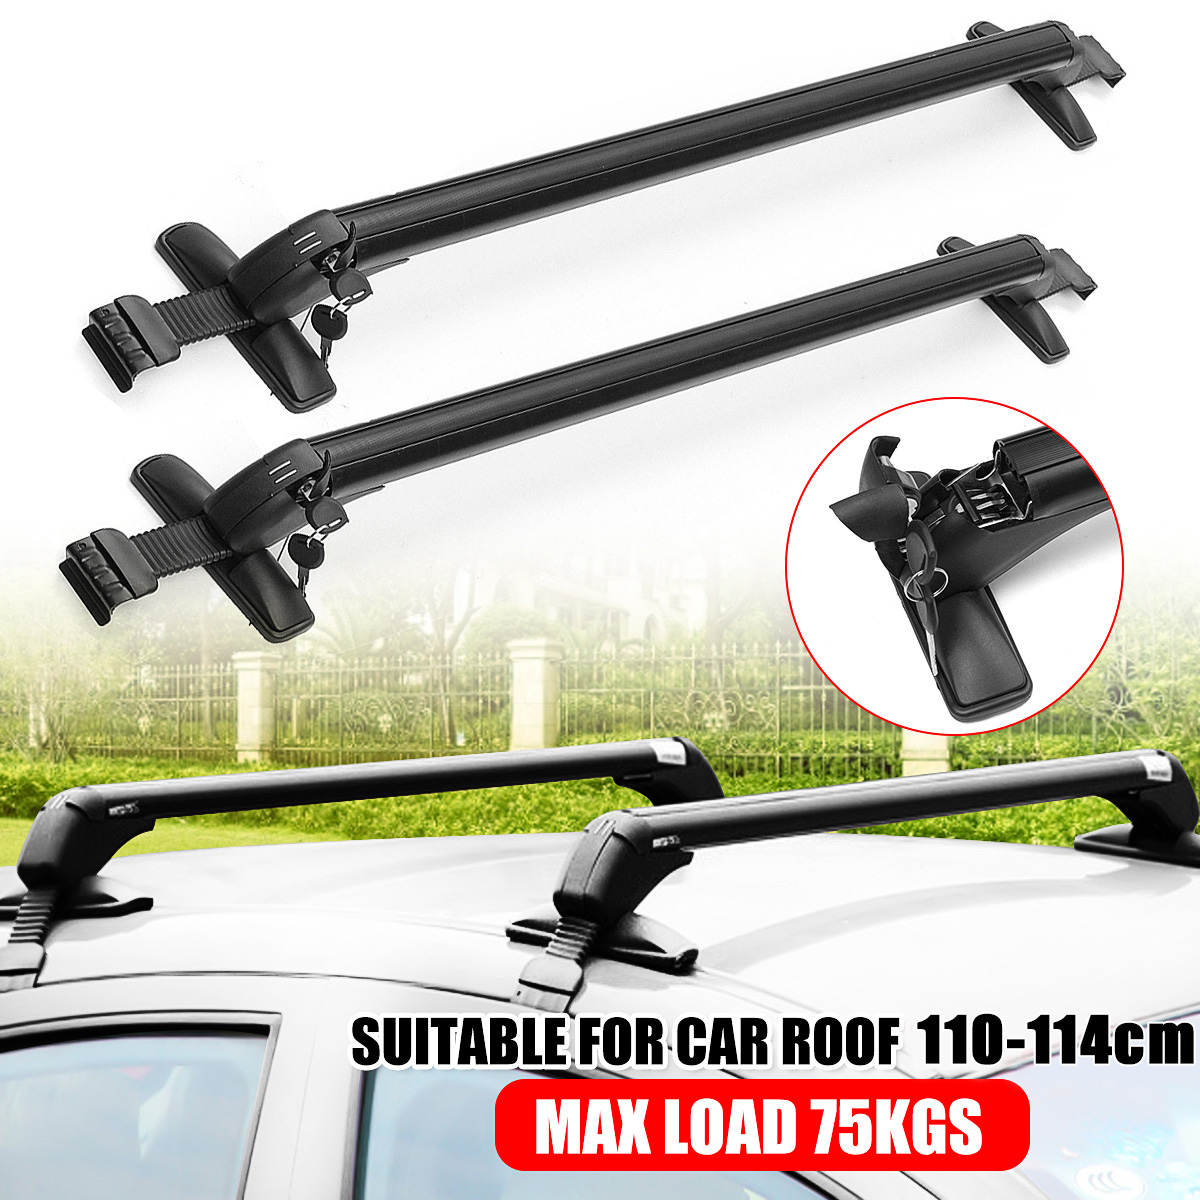 car top luggage roof rack cross bar carrier adjustable window frame car roof bars suit for 43 31 44 88 roof